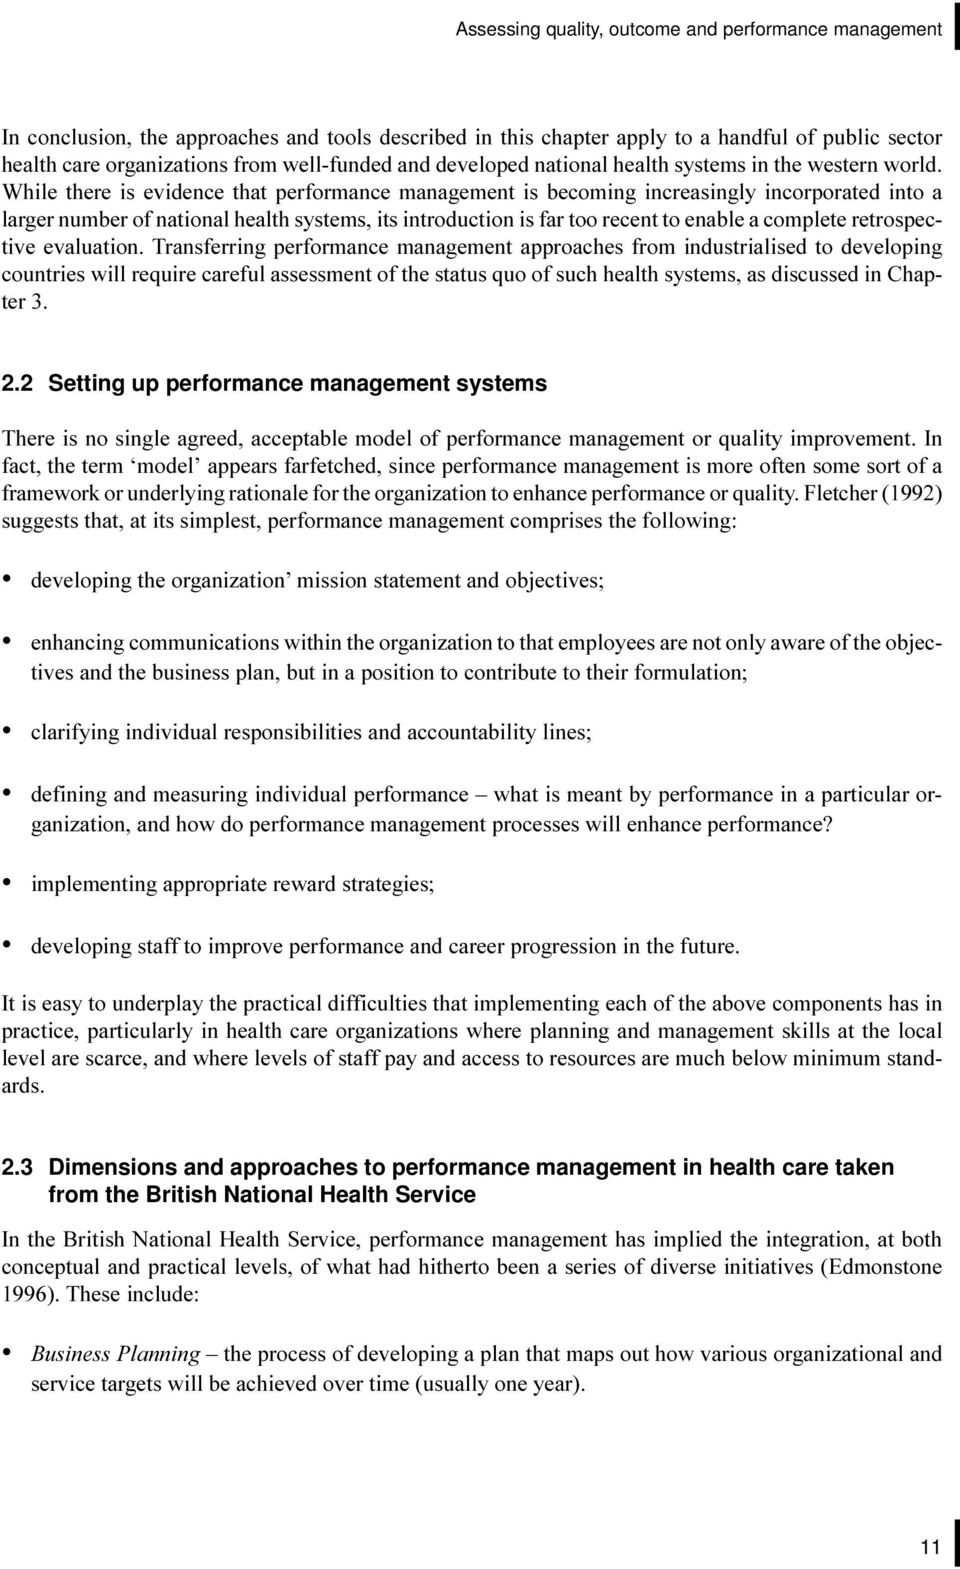 its introduction is far too recent to enable a complete retrospective evaluation Transferring performance management approaches from industrialised to developing countries will require careful